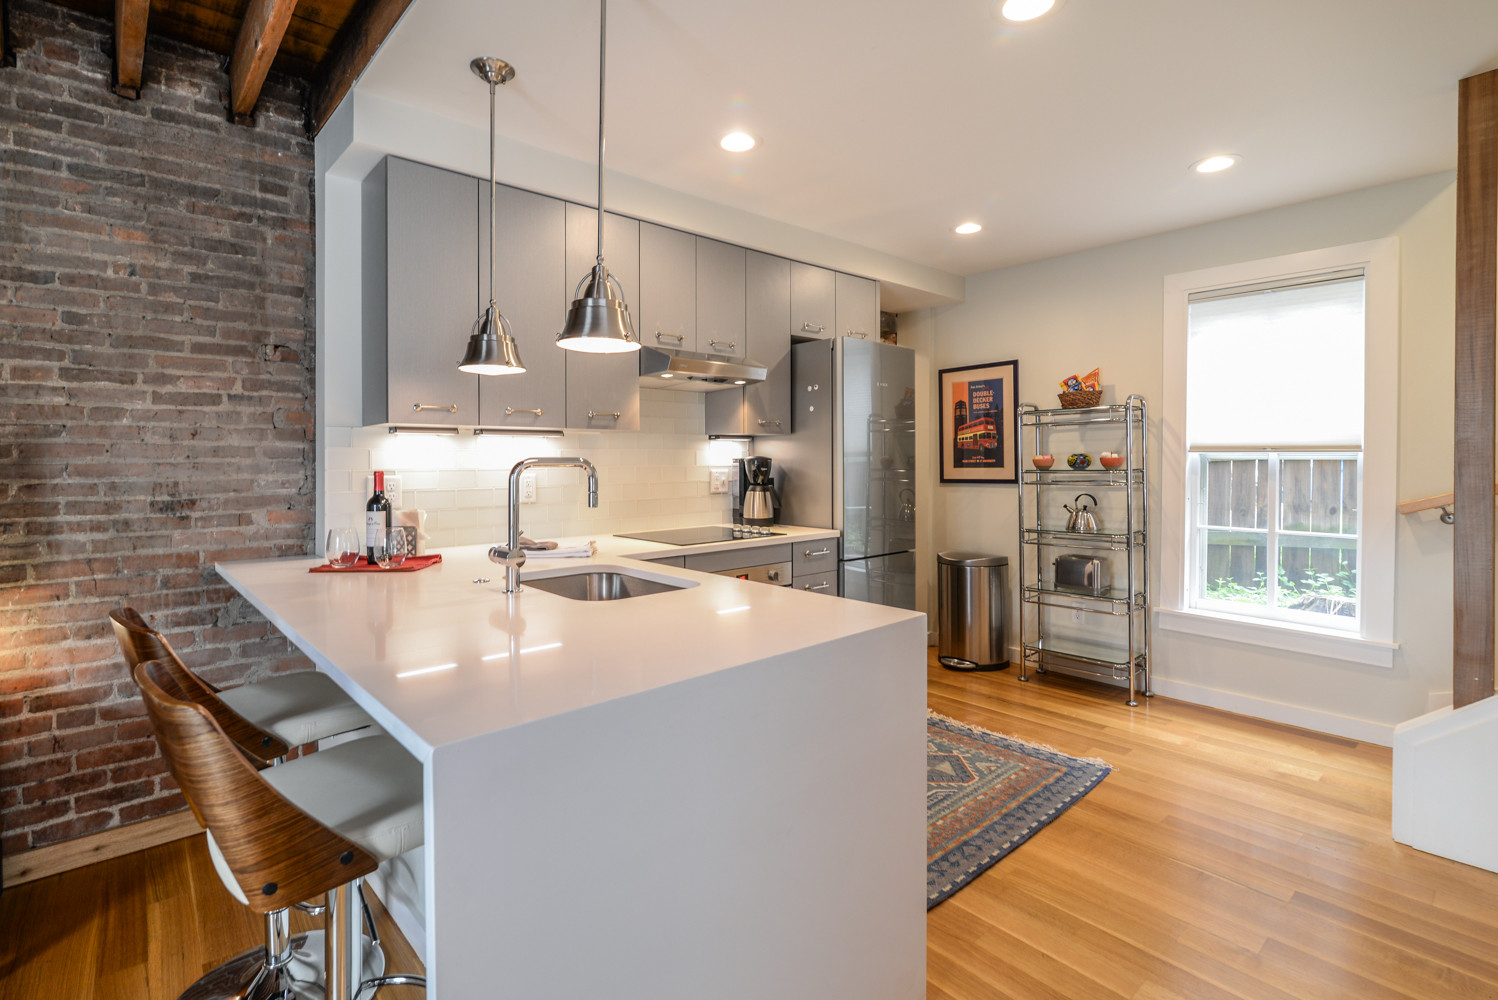 Inspiration for a small rustic l-shaped medium tone wood floor and brown floor eat-in kitchen remodel in Detroit with an undermount sink, flat-panel cabinets, gray cabinets, quartz countertops, white